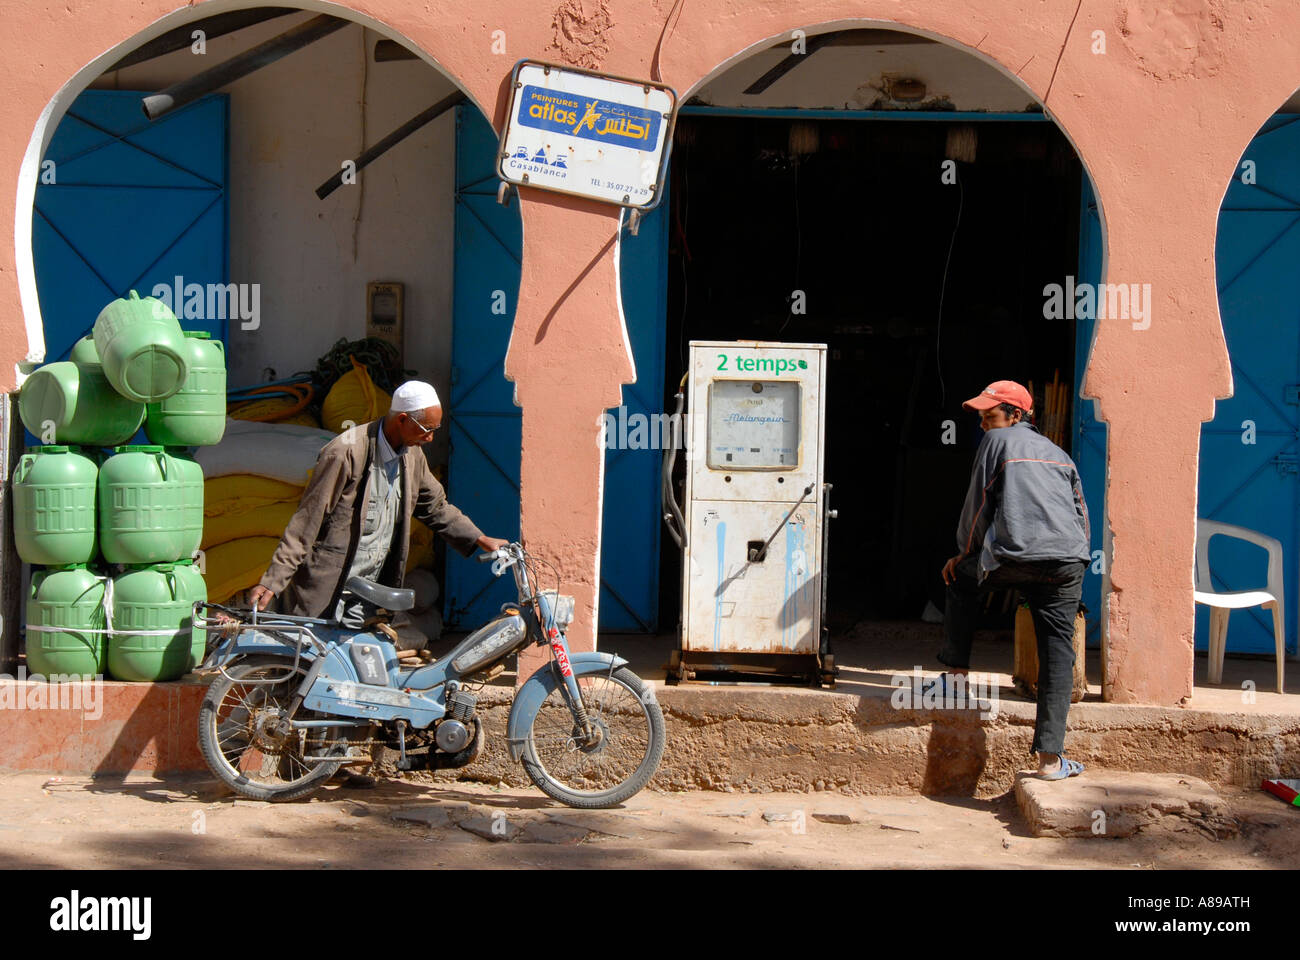 Oriental flair motorcyclist gets gas at old fuel station Foum Zguid Morocco - Stock Image